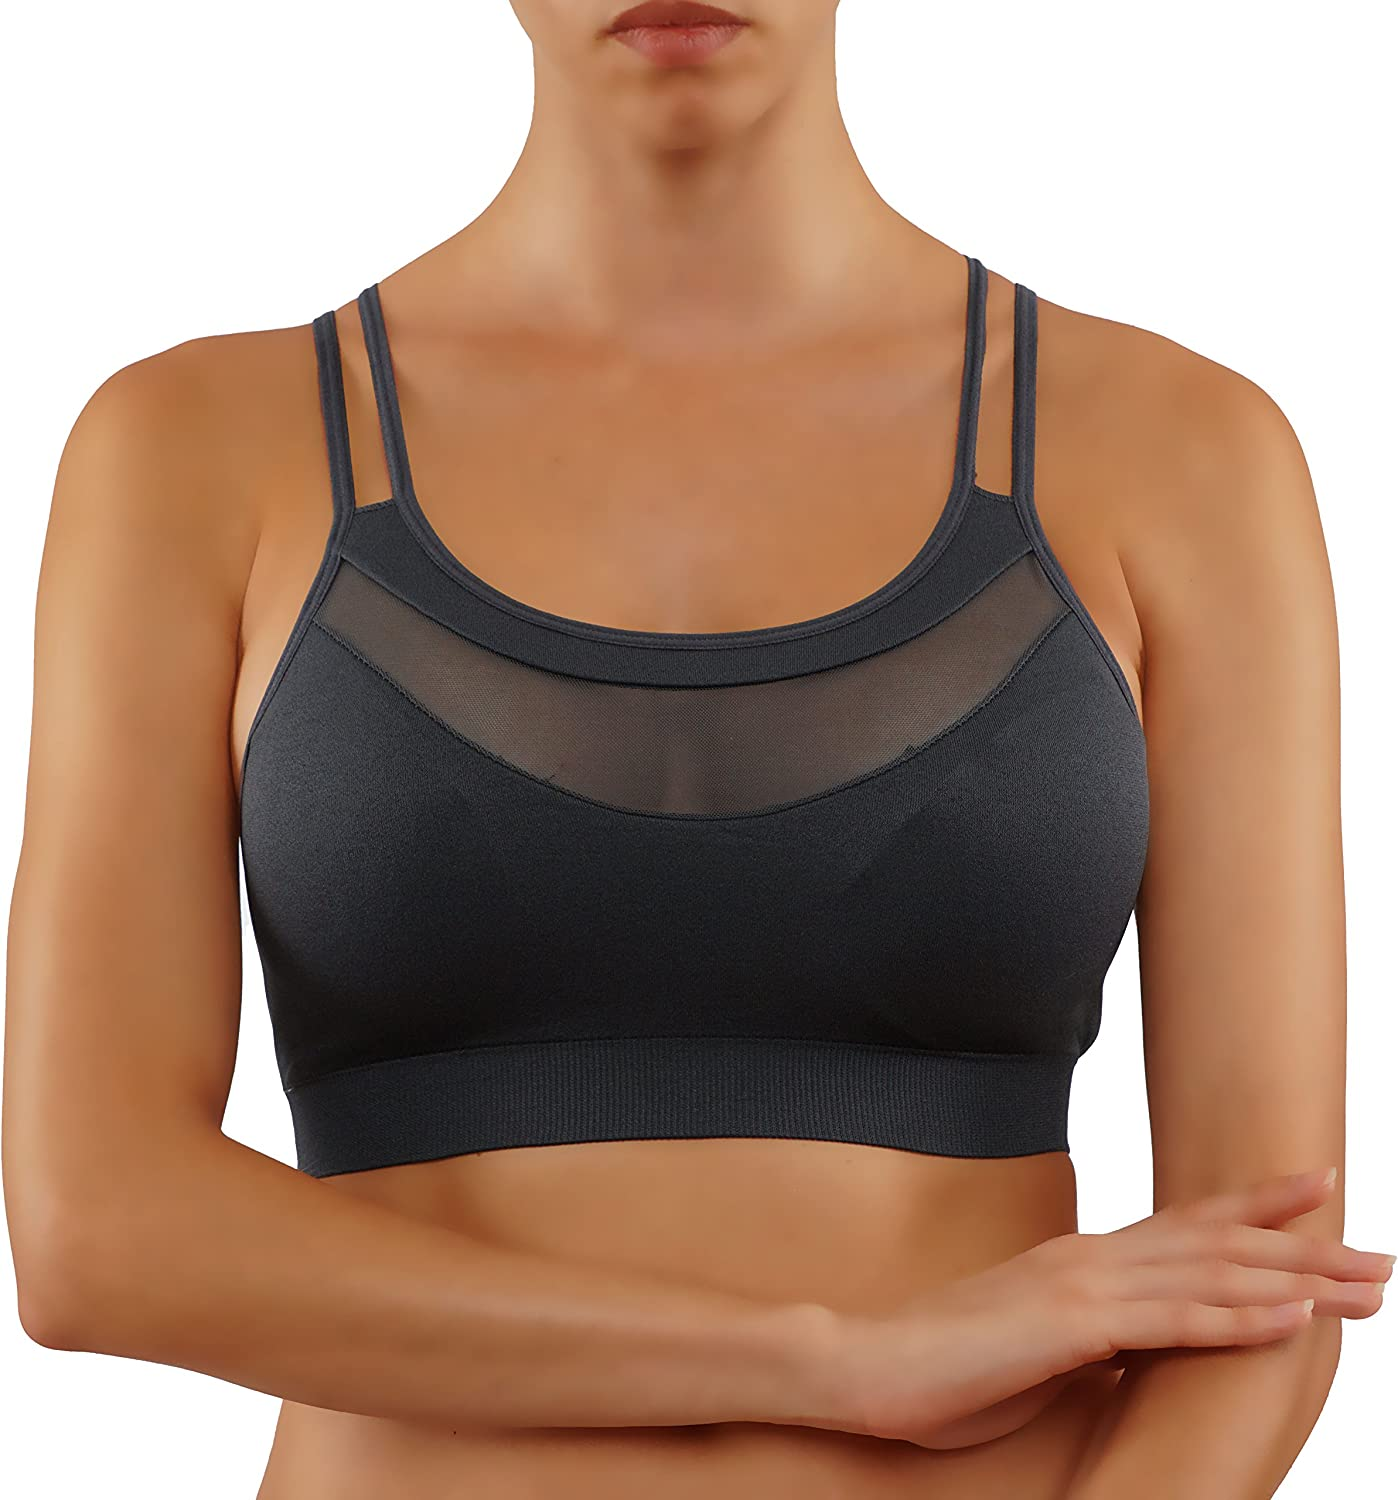 ROUGHRIVER Women's Max Quantity limited 41% OFF Yoga Top Sports Removable Paddin Wirefree Bra